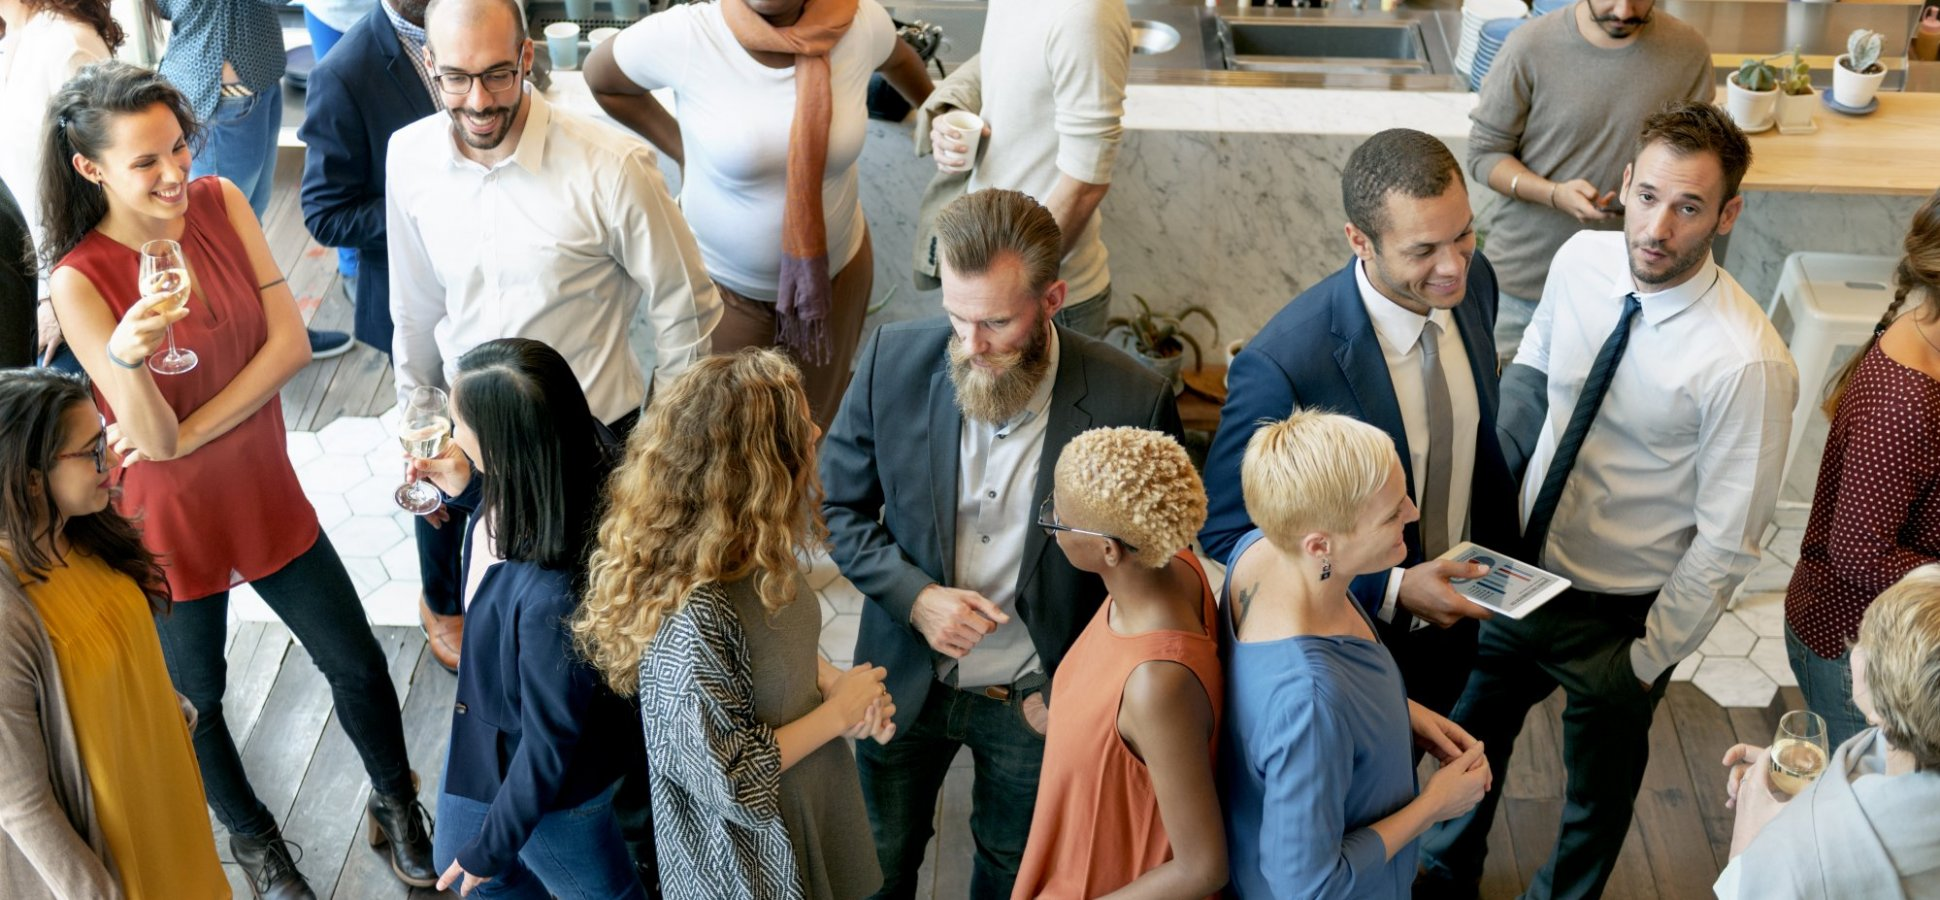 33 Questions to Help You Overcome Shyness--So You Can Be Awesome at Networking, Speed-Dating, Mingling or Schmoozing